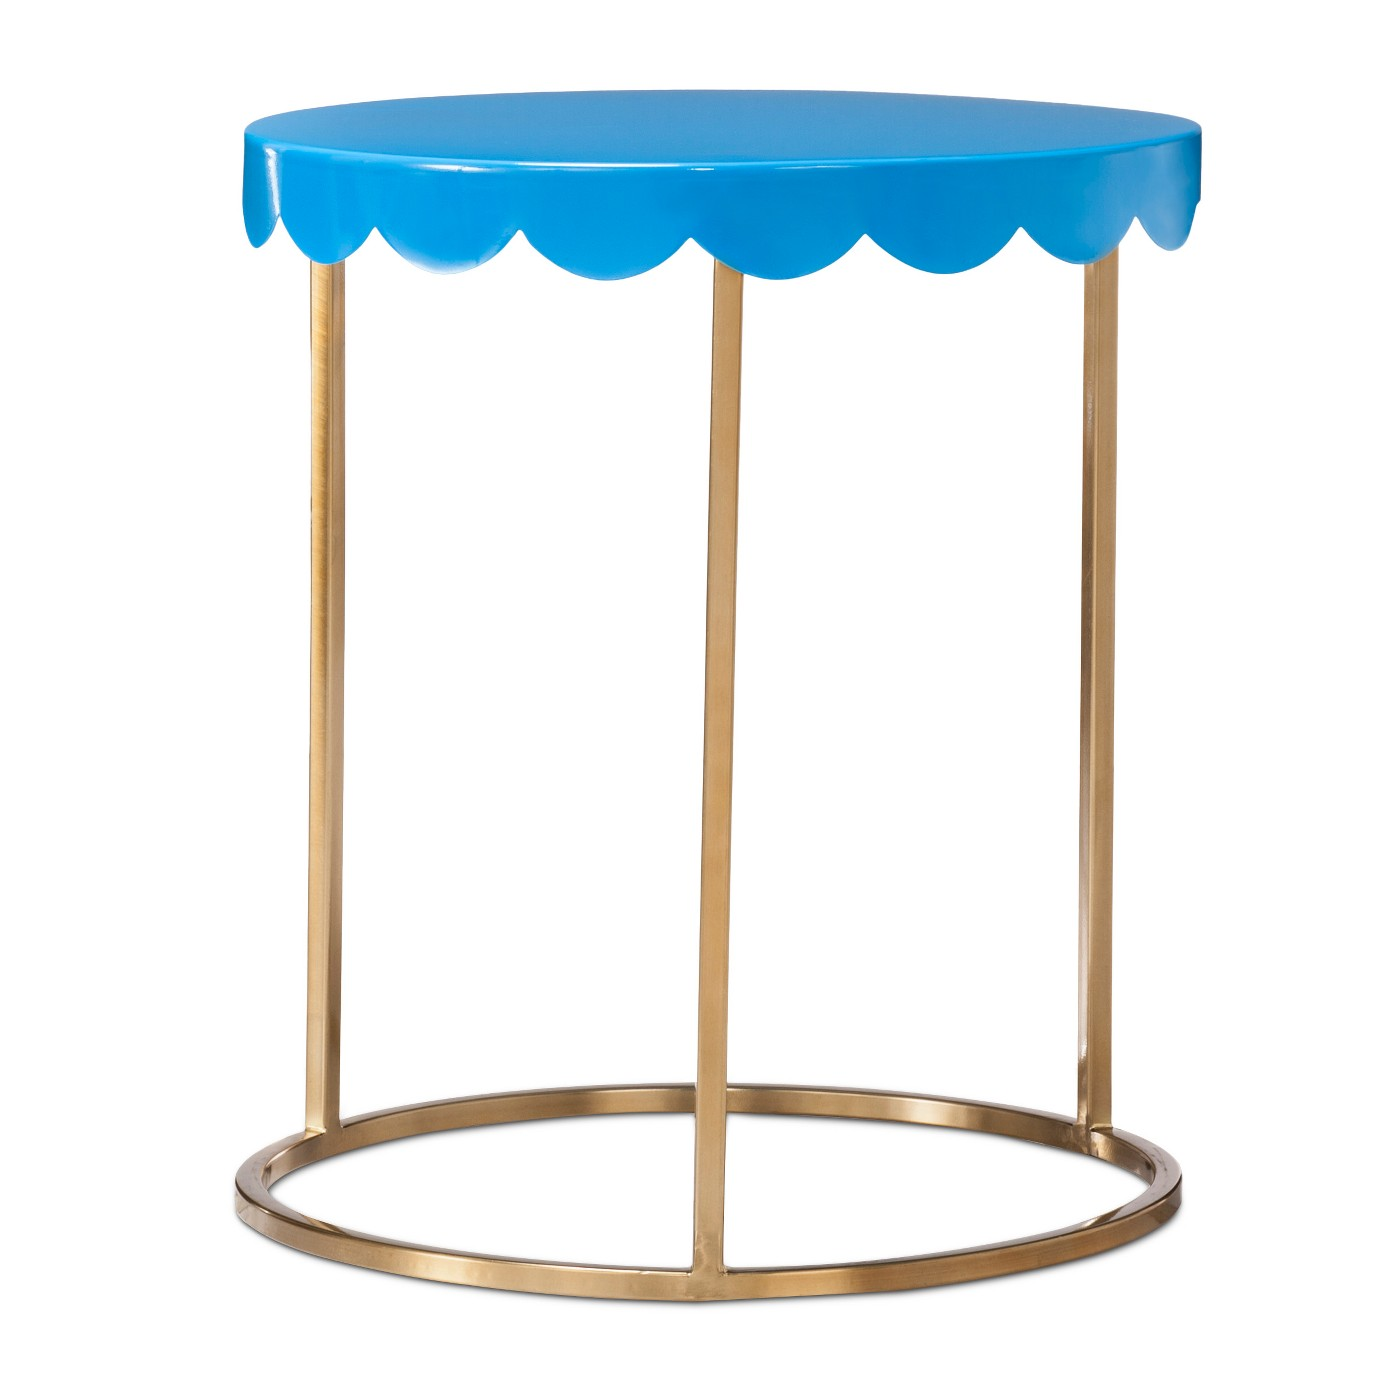 target pillowfort kids accent table side night stand attach mirrored vivid blue mid century round iron and wood coffee dorm supplies short bench berg furniture garden with